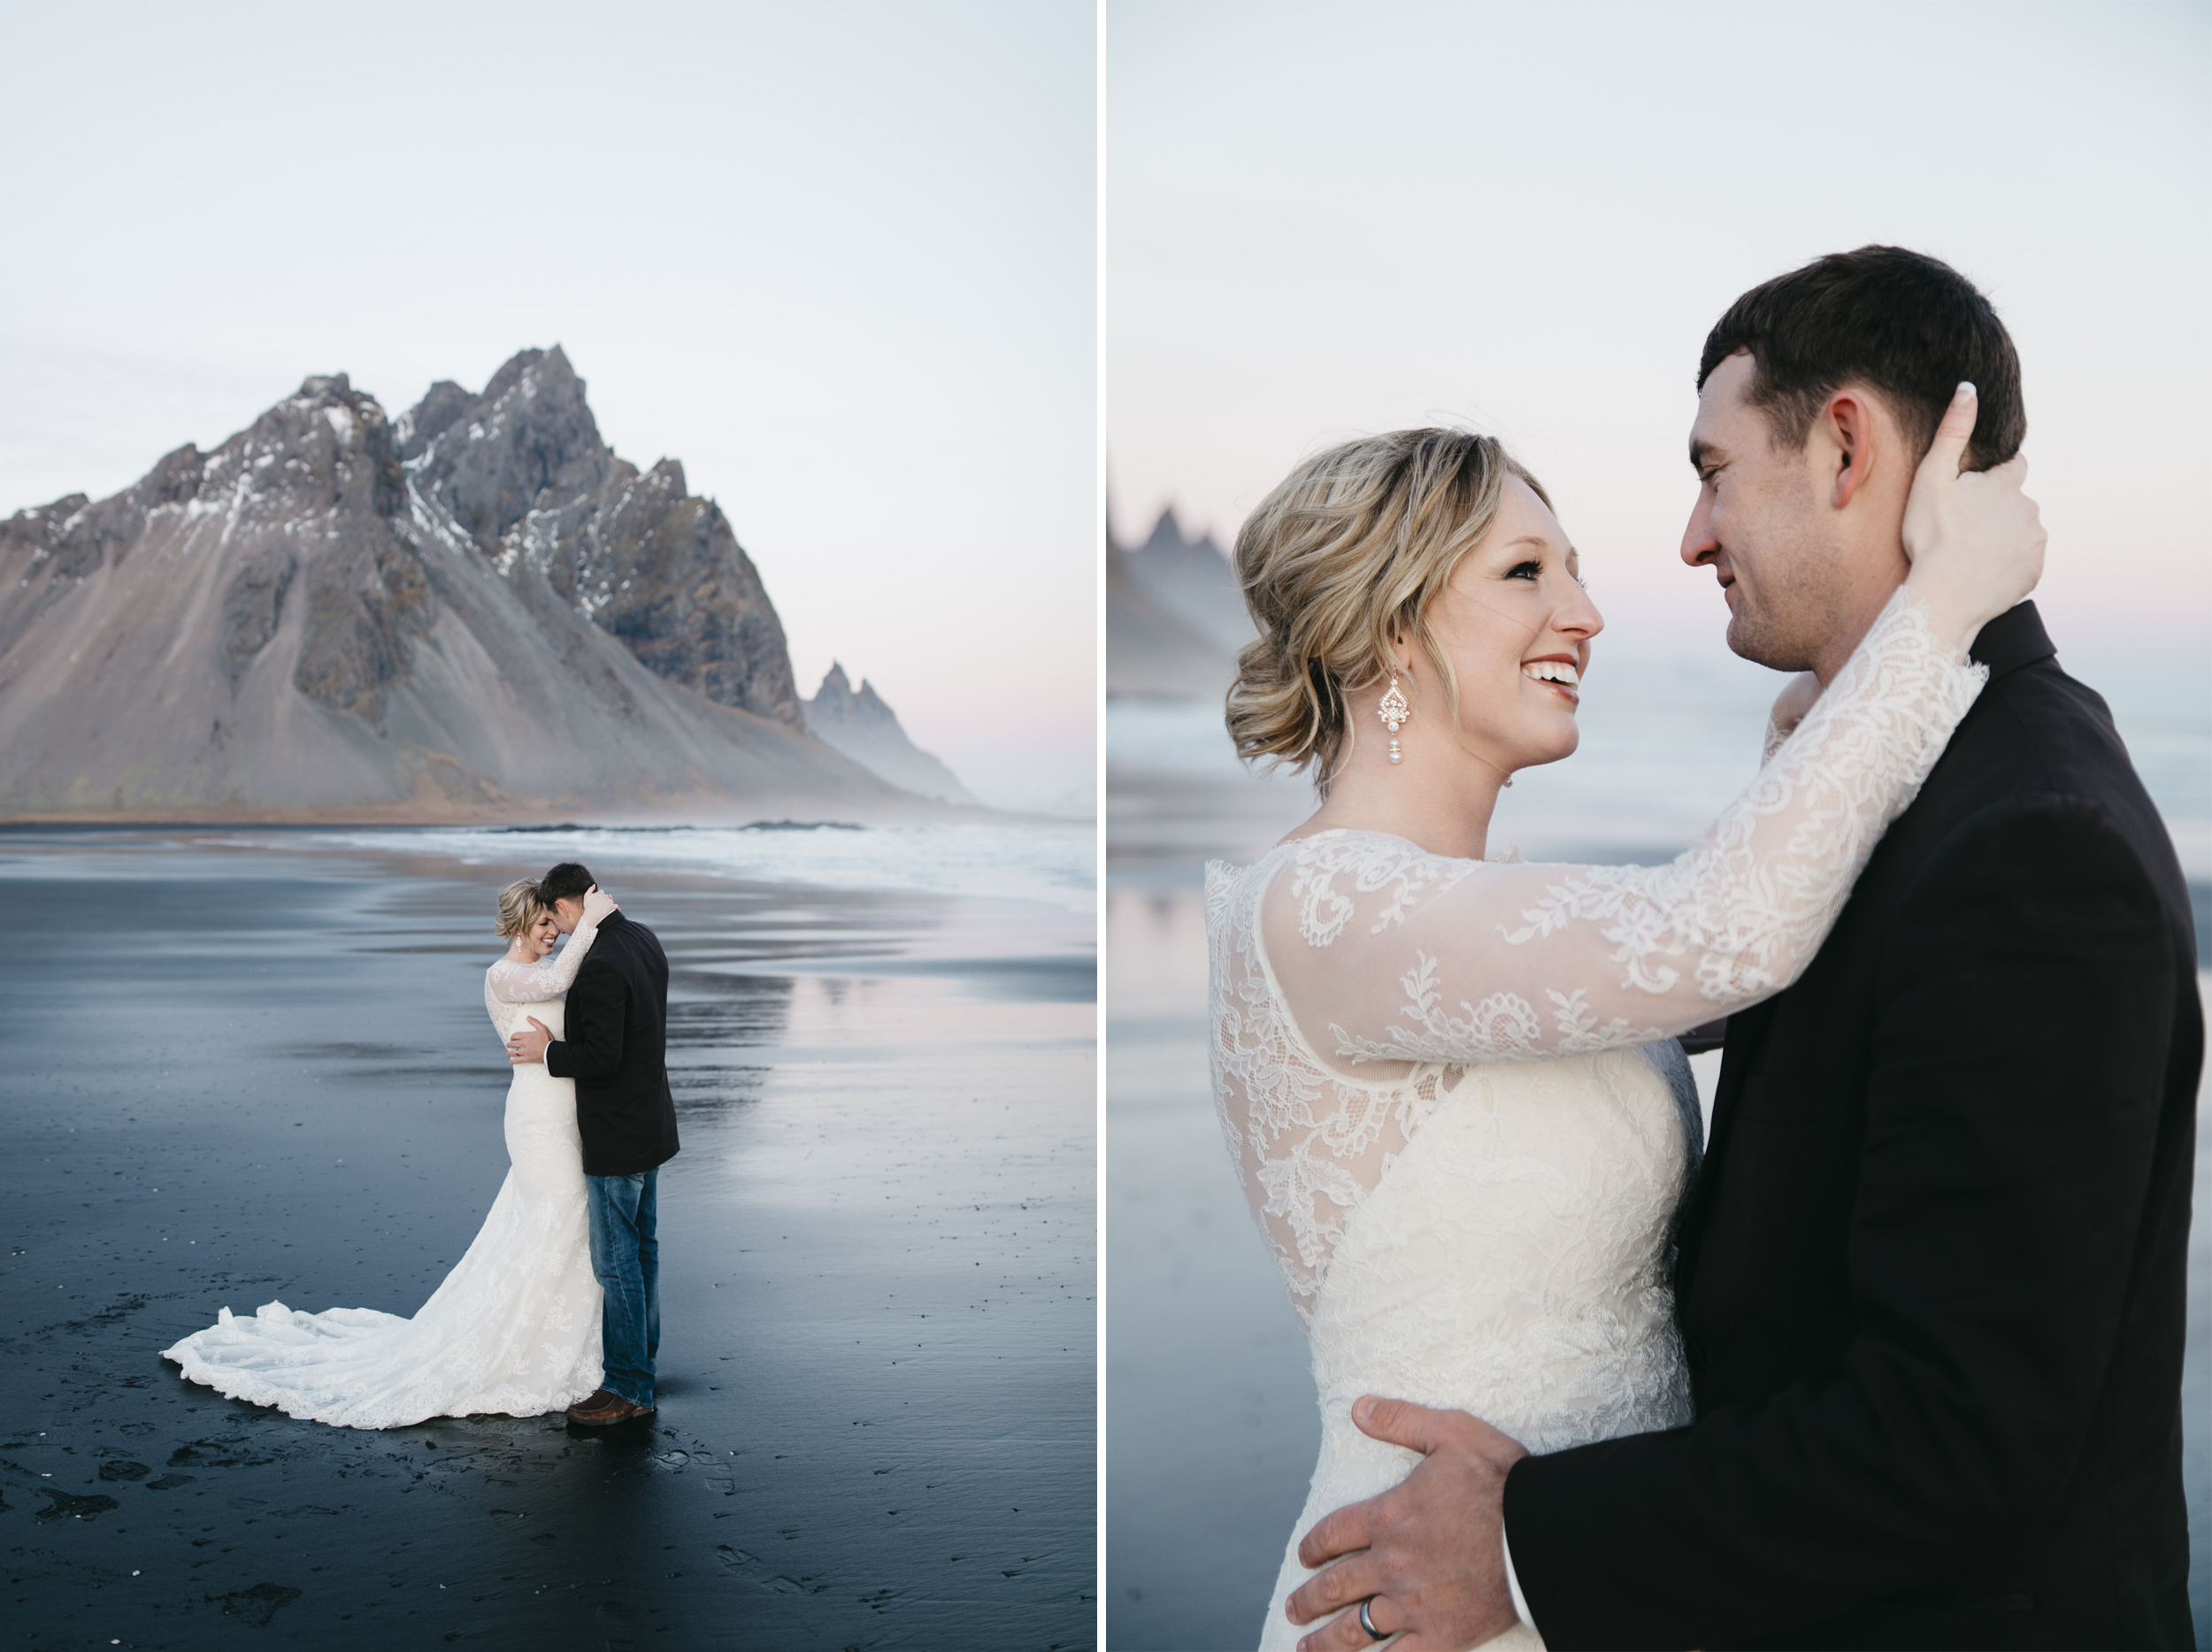 A happy couple shares their first dance after eloping in Iceland with destination wedding photographers colby and jess.